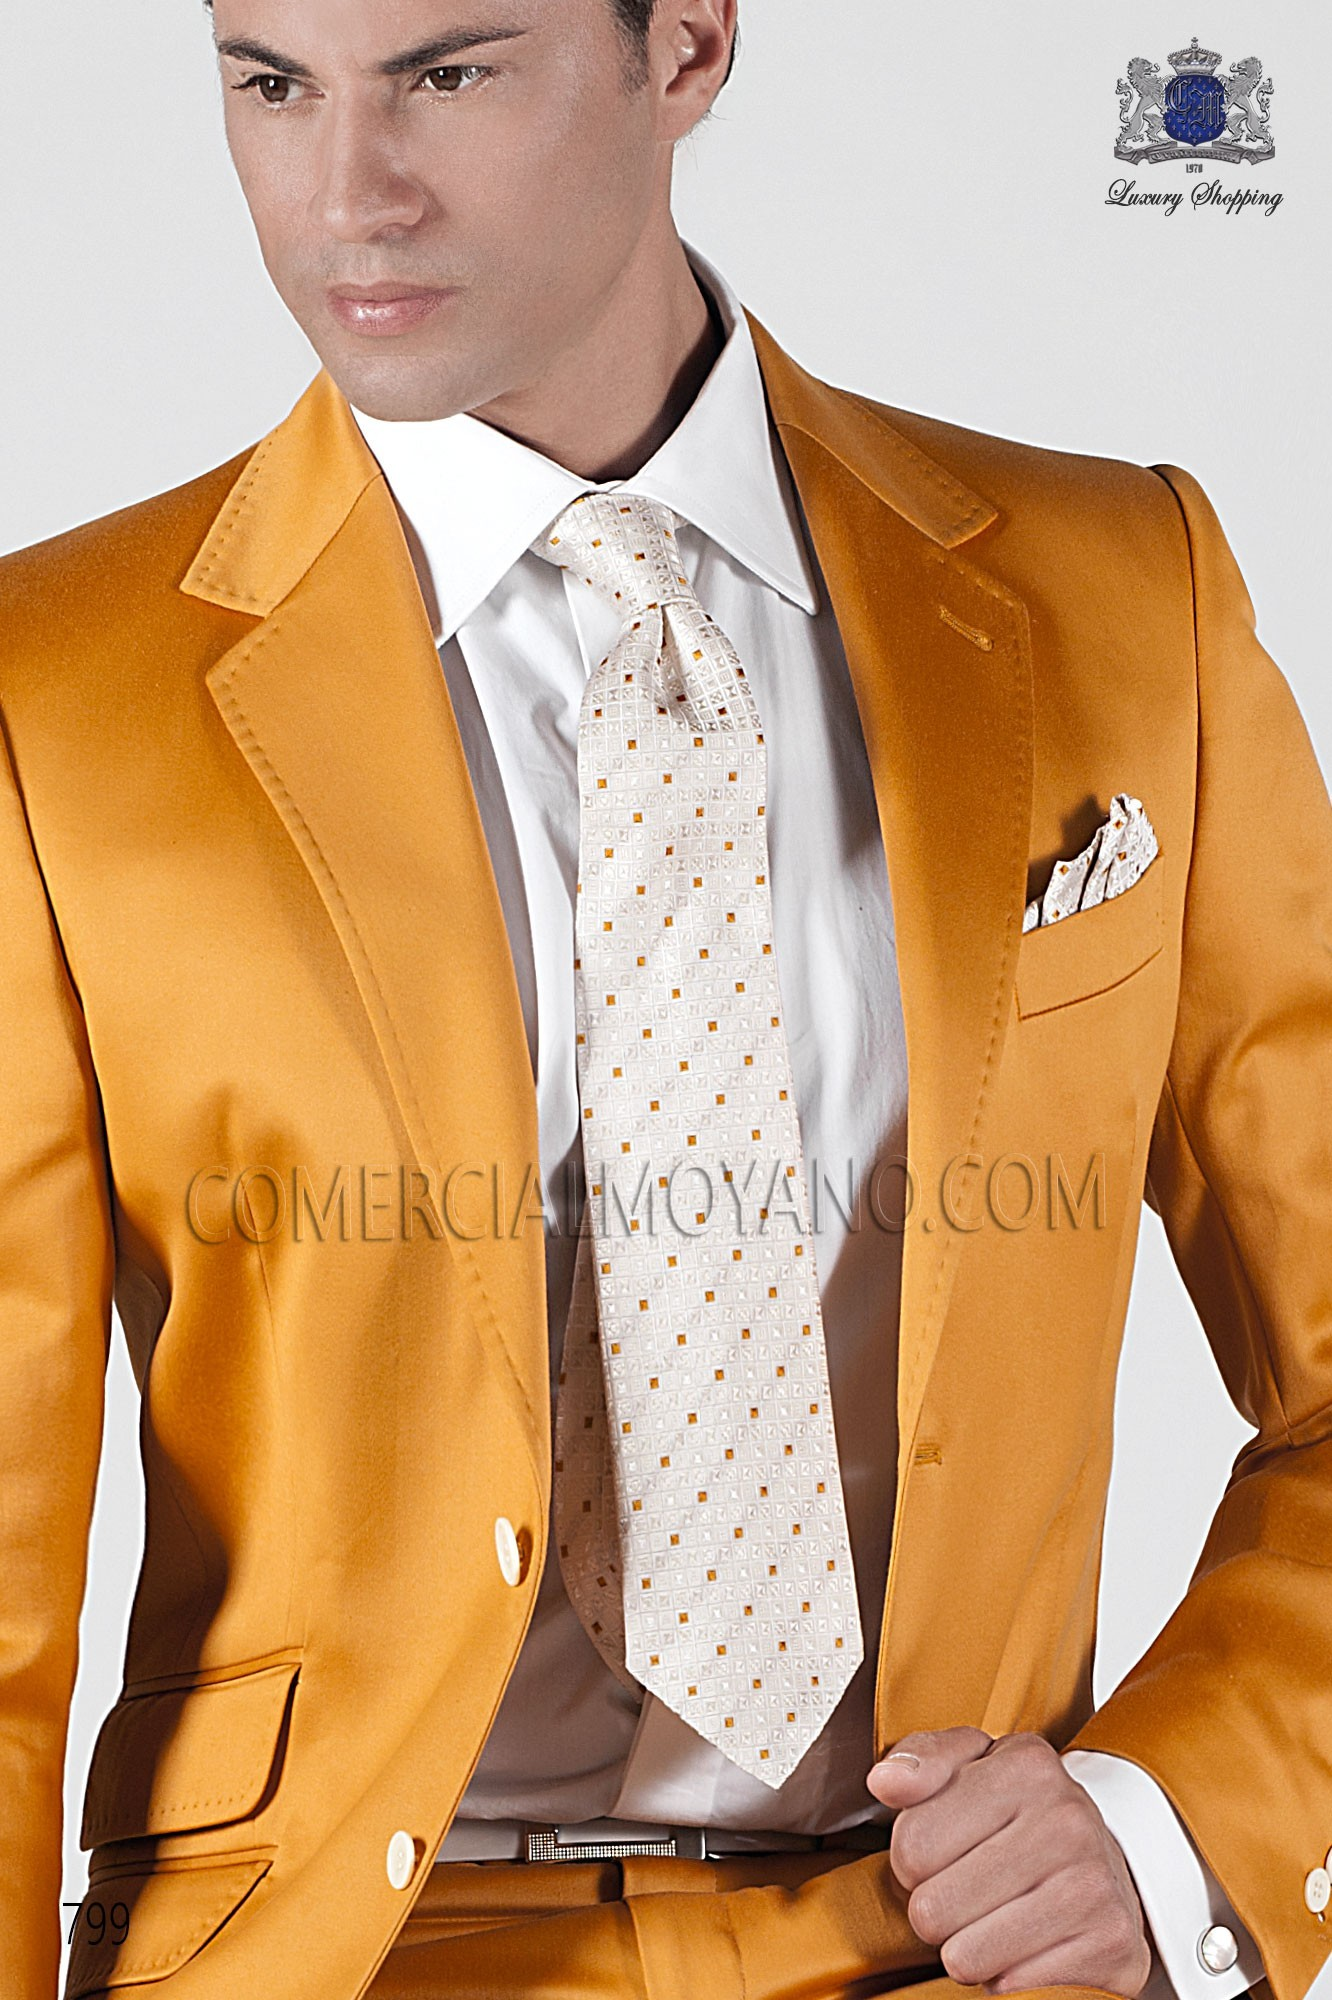 Italian hipster gold men wedding suit, model: 799 Ottavio Nuccio Gala Hipster Collection